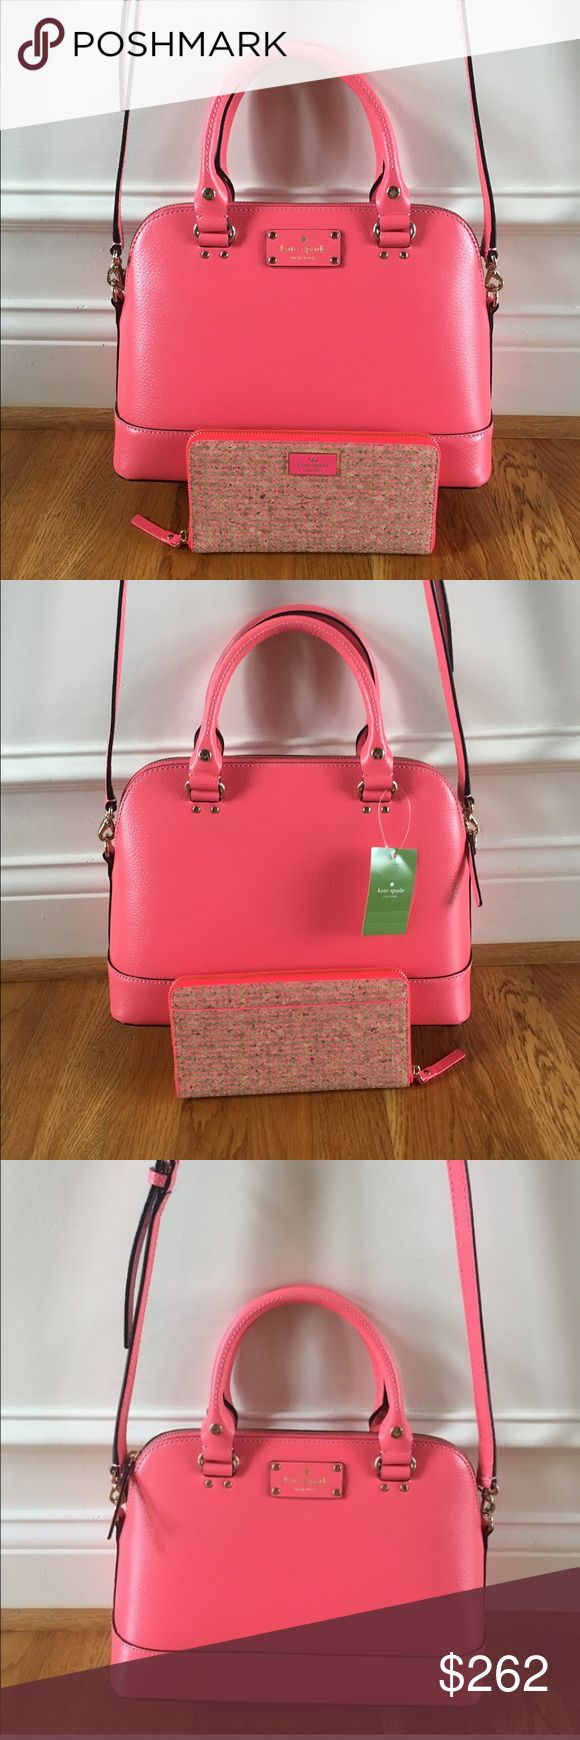 ❗️BUNDLE SALE❗️$516 Kate Sapde New with tags $328 Kate Spade small Rachelle wellesley crossbody in flamingo// brand new, perfect condition, never worn before. New with tags $188 Kate Spade Lacey wallet in arbor way in ntl/flognm// brand new, perfect condition, never worn before. kate spade Bags Crossbody Bags